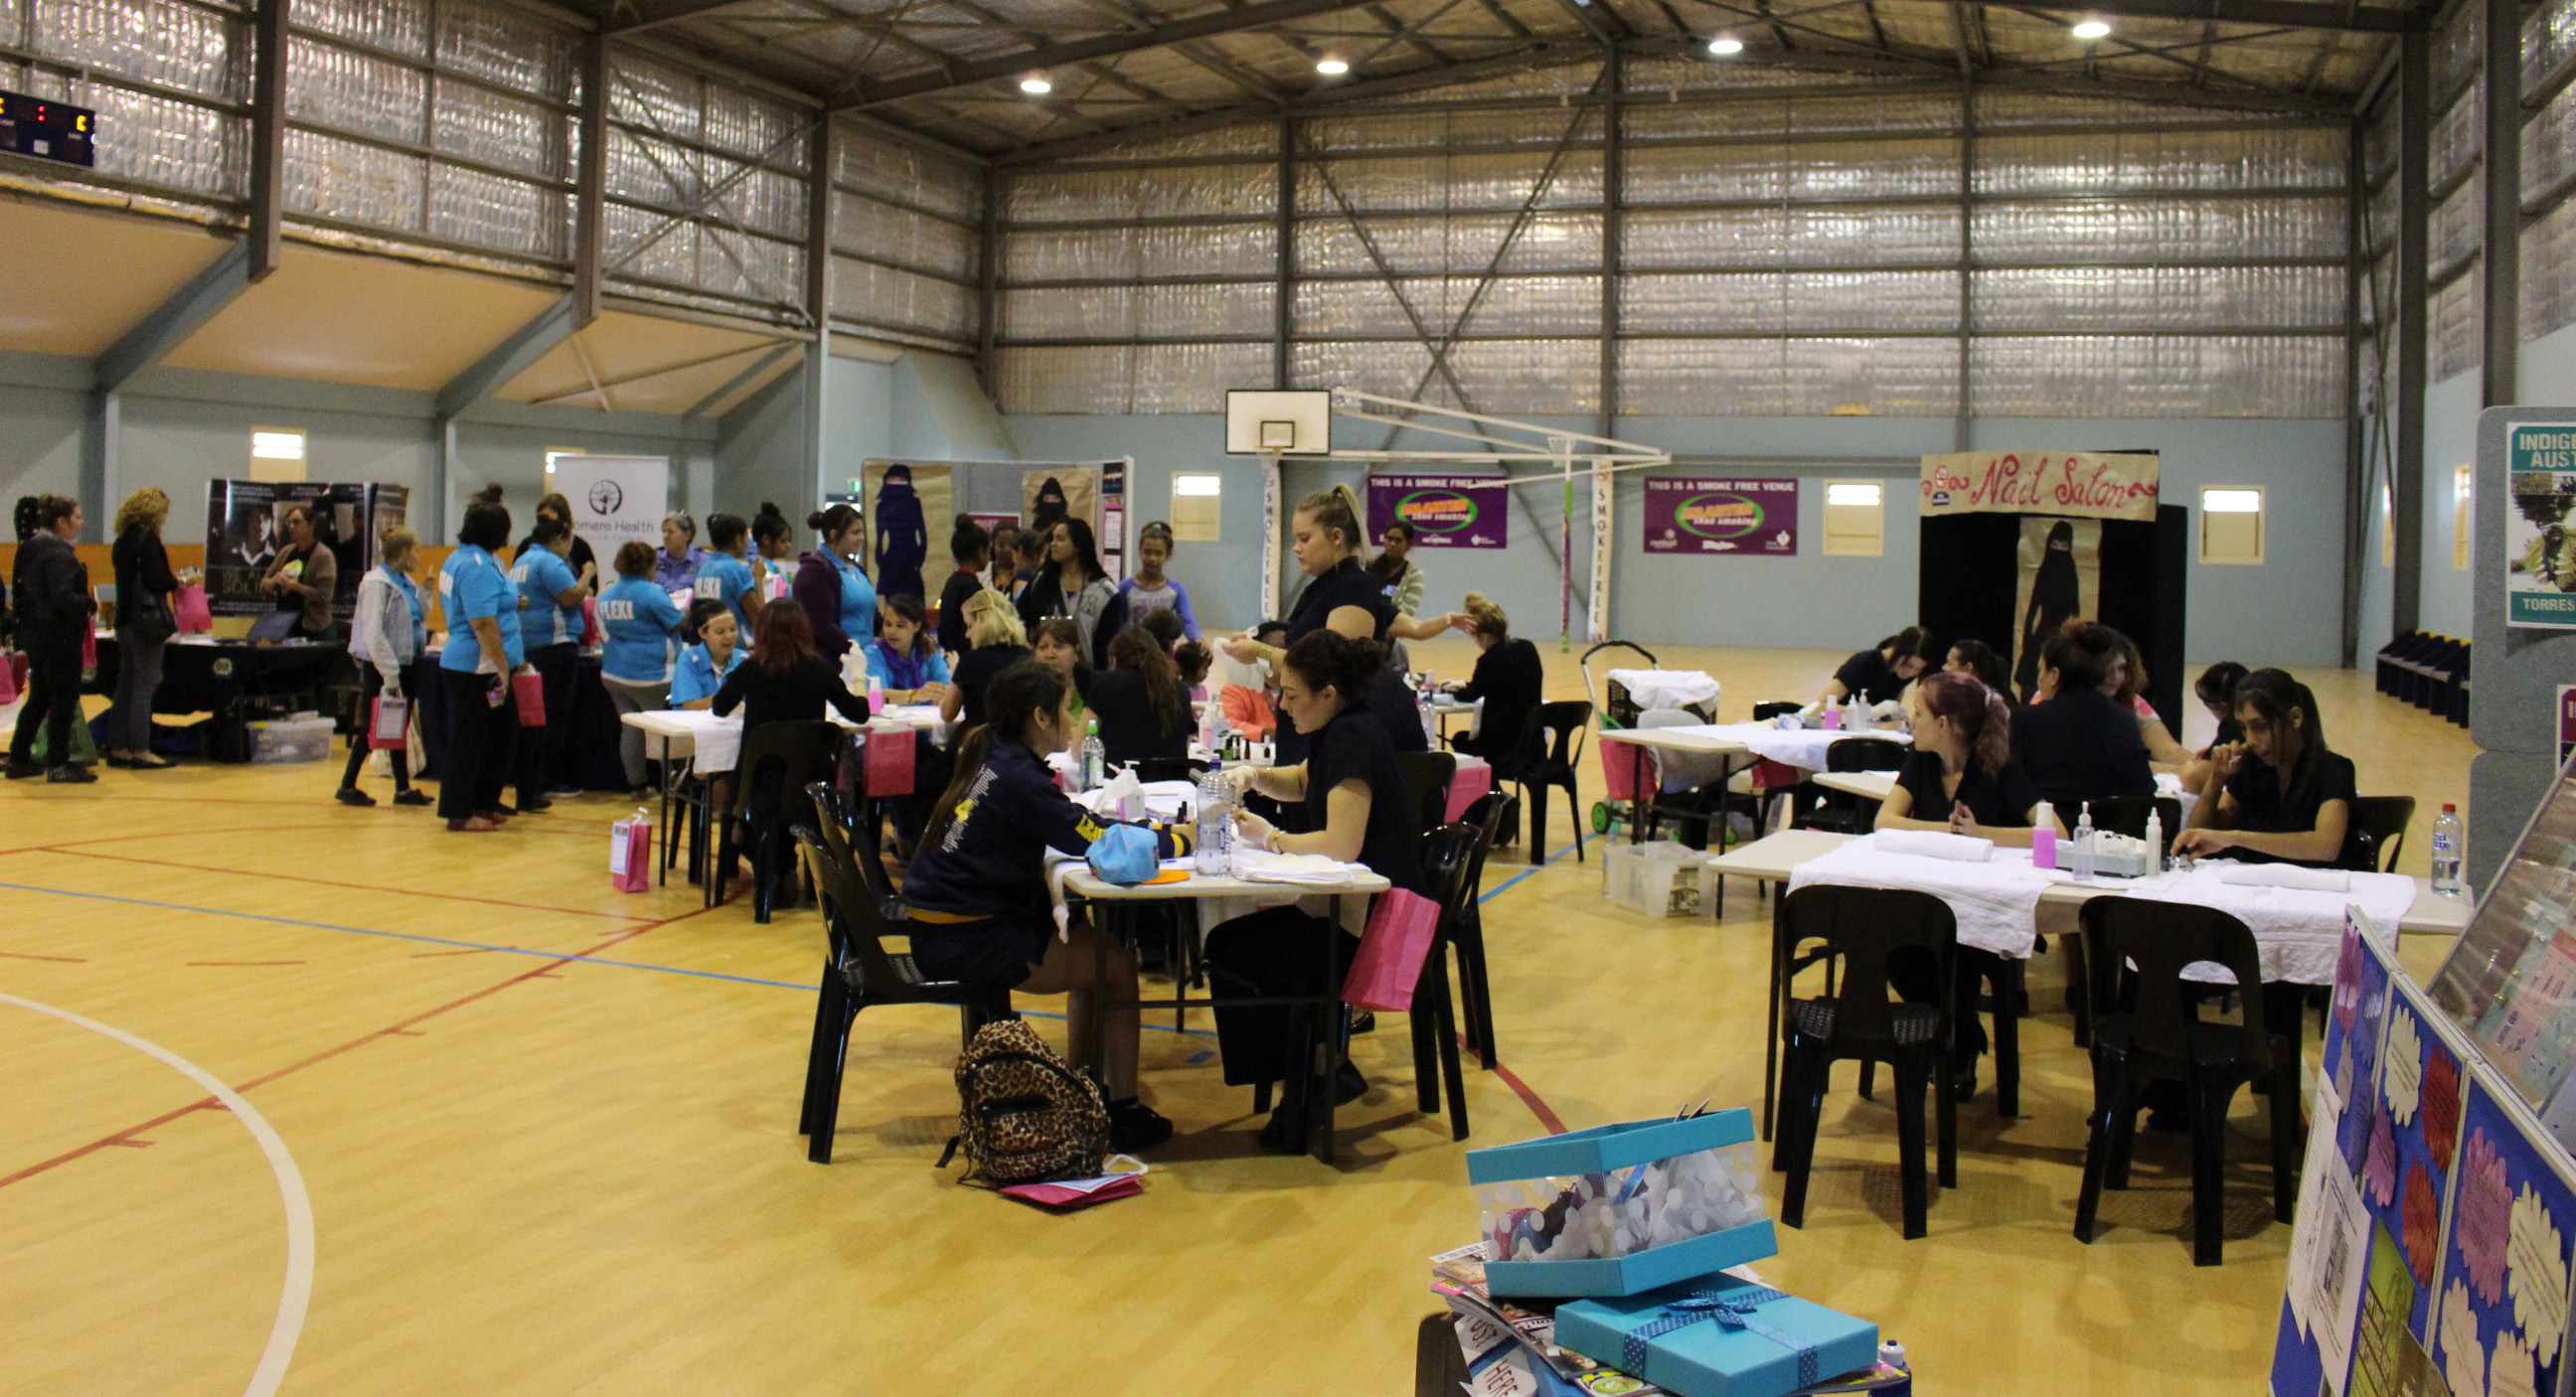 There was plenty to do at the Deadly Divaz wellbeing day in Geraldton.